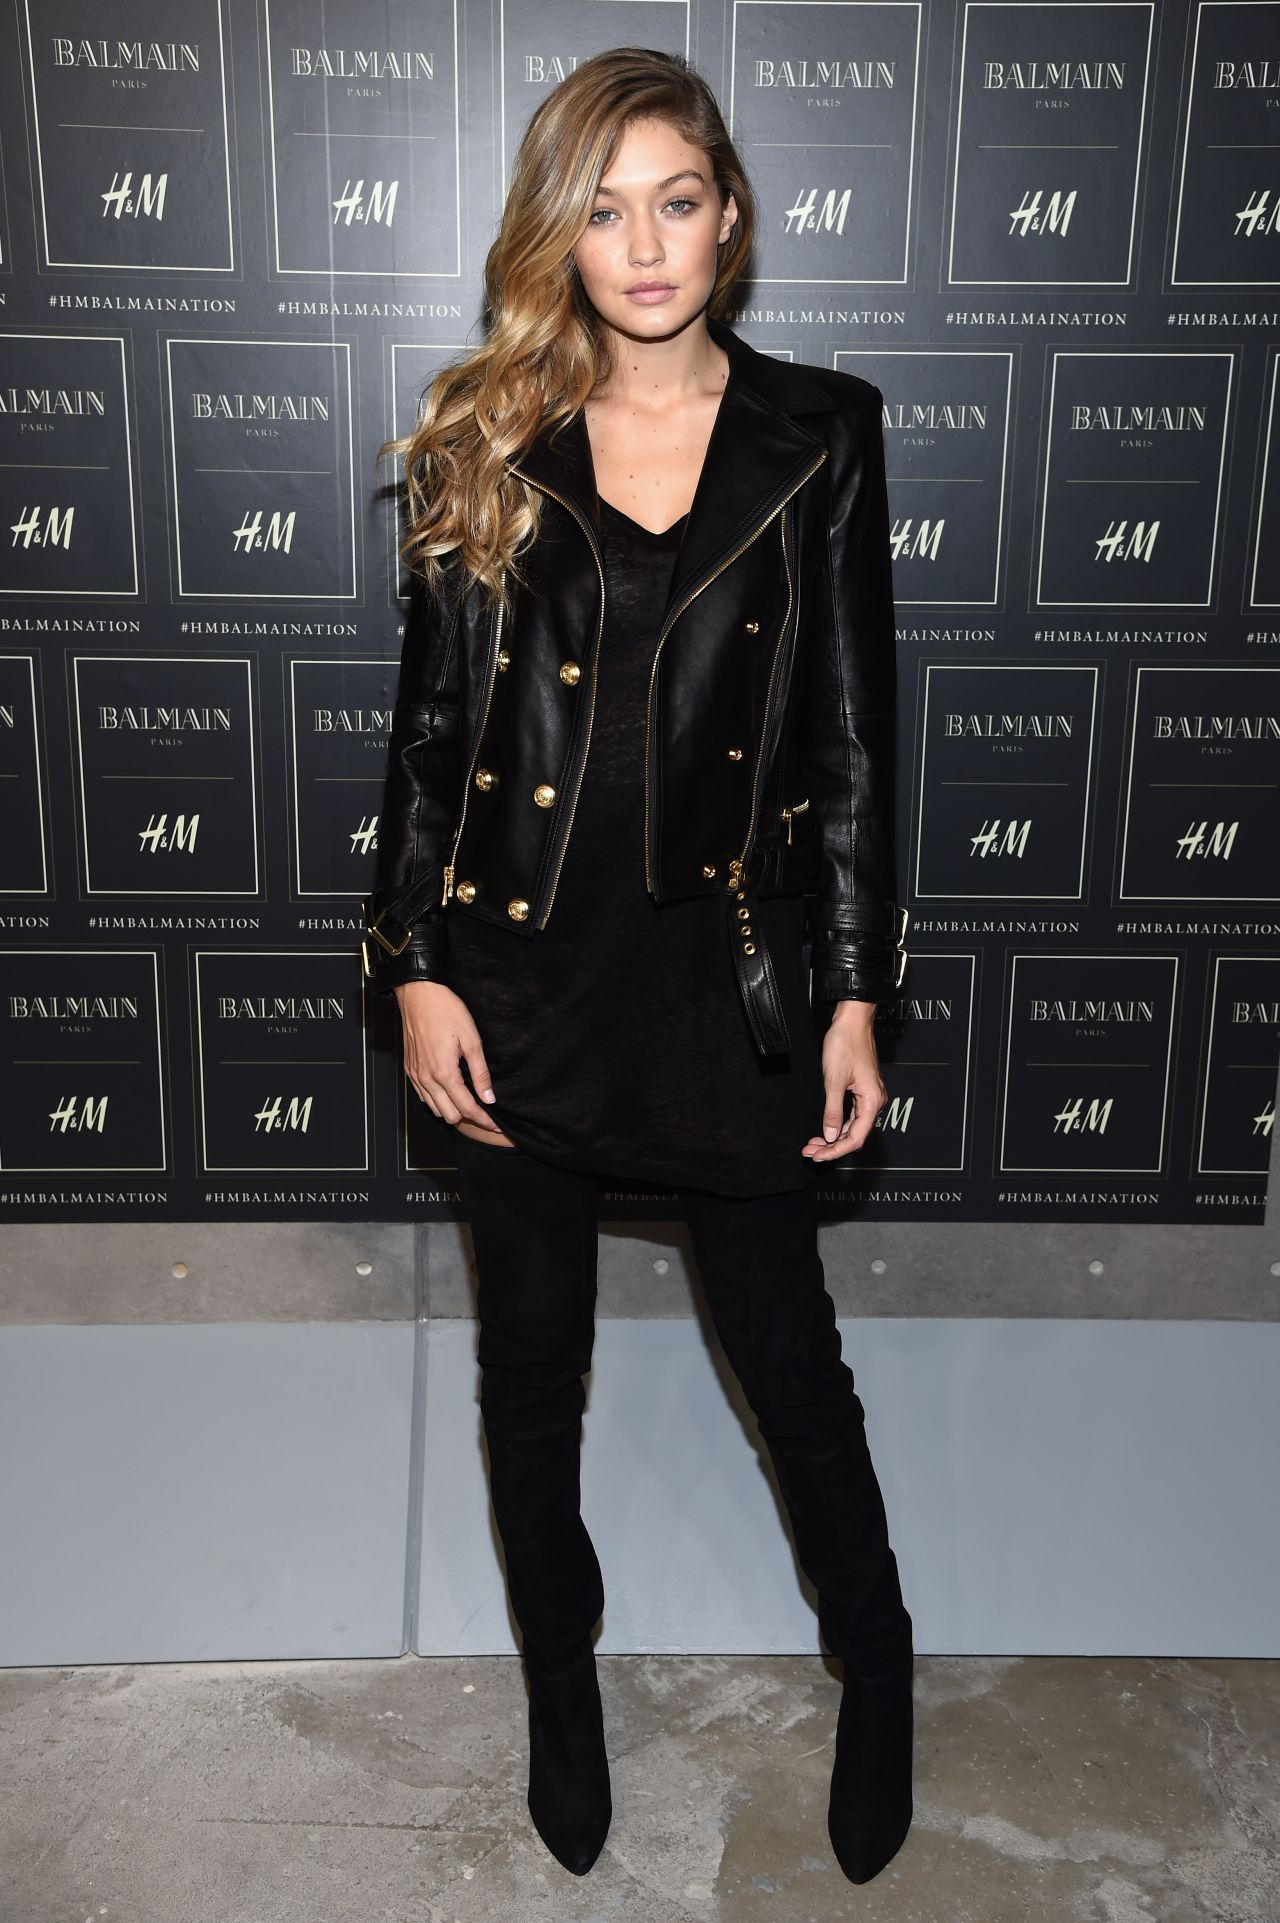 gigi-hadid-balmain-x-h-m-collection-launch-in-new-york-city_7